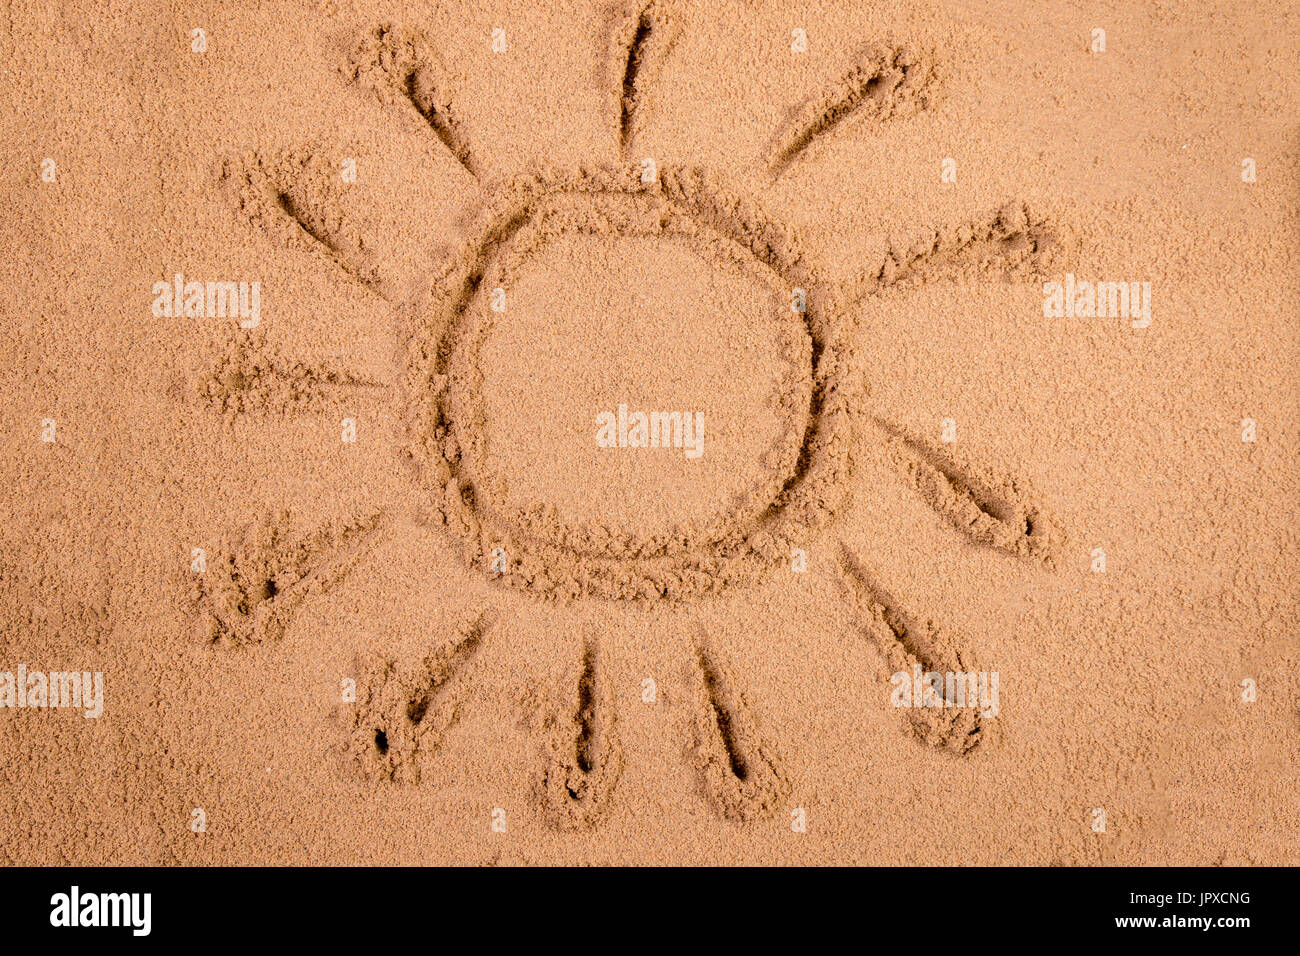 Sun drawn in soft wet sand on a beach - Stock Image